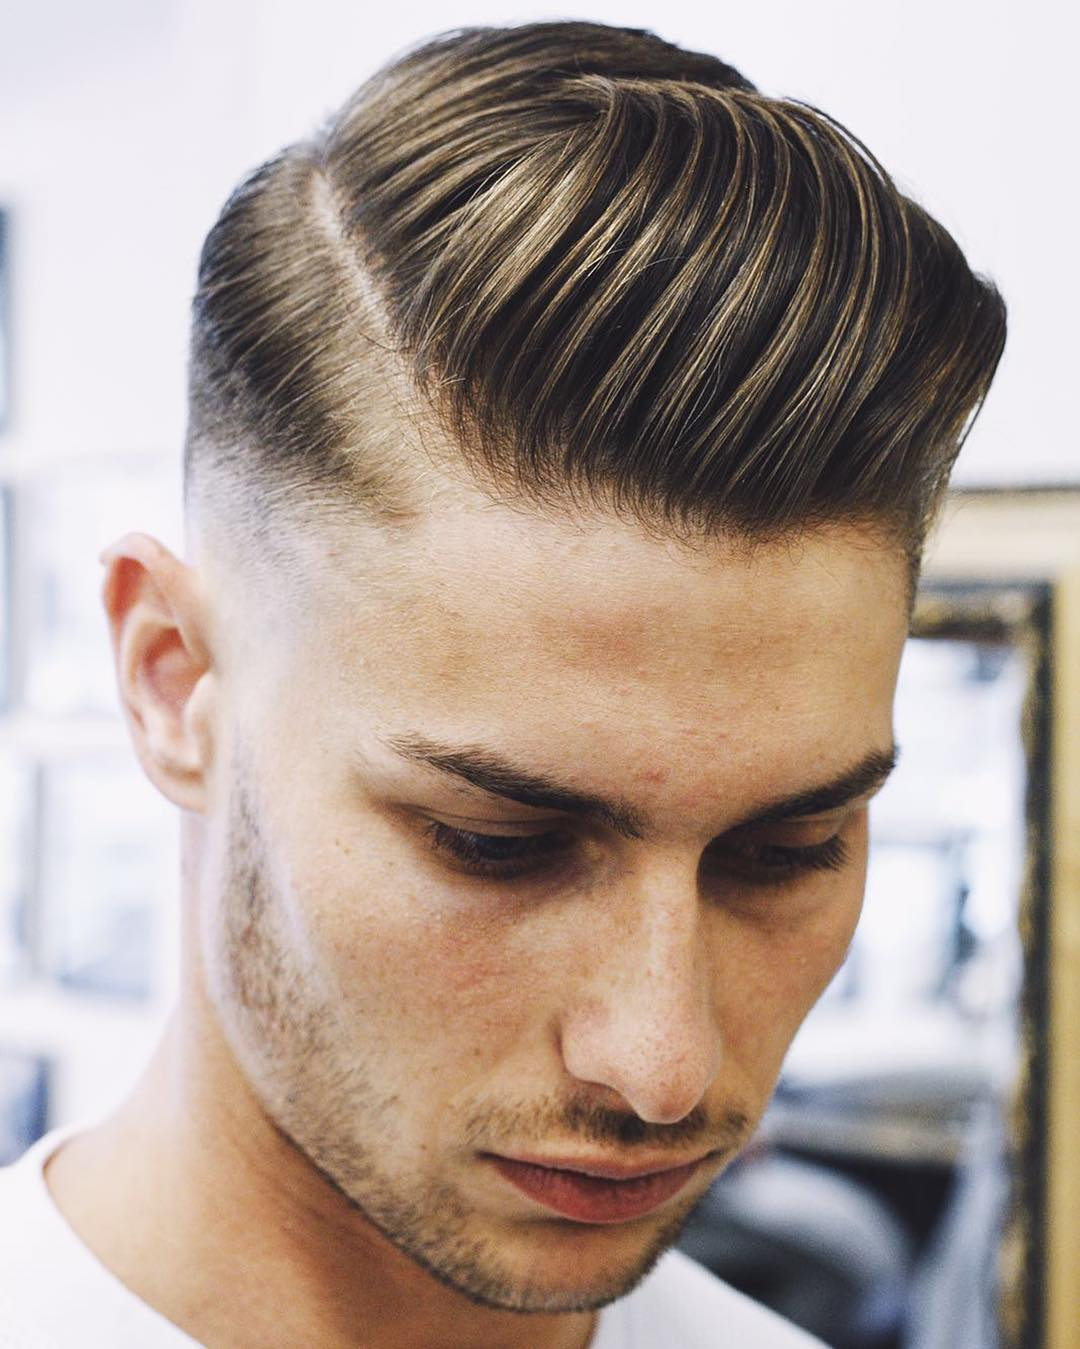 Slick-Hair-with-Side-Part-and-Undercut Modern Hairstyles for Men to Look Awesome